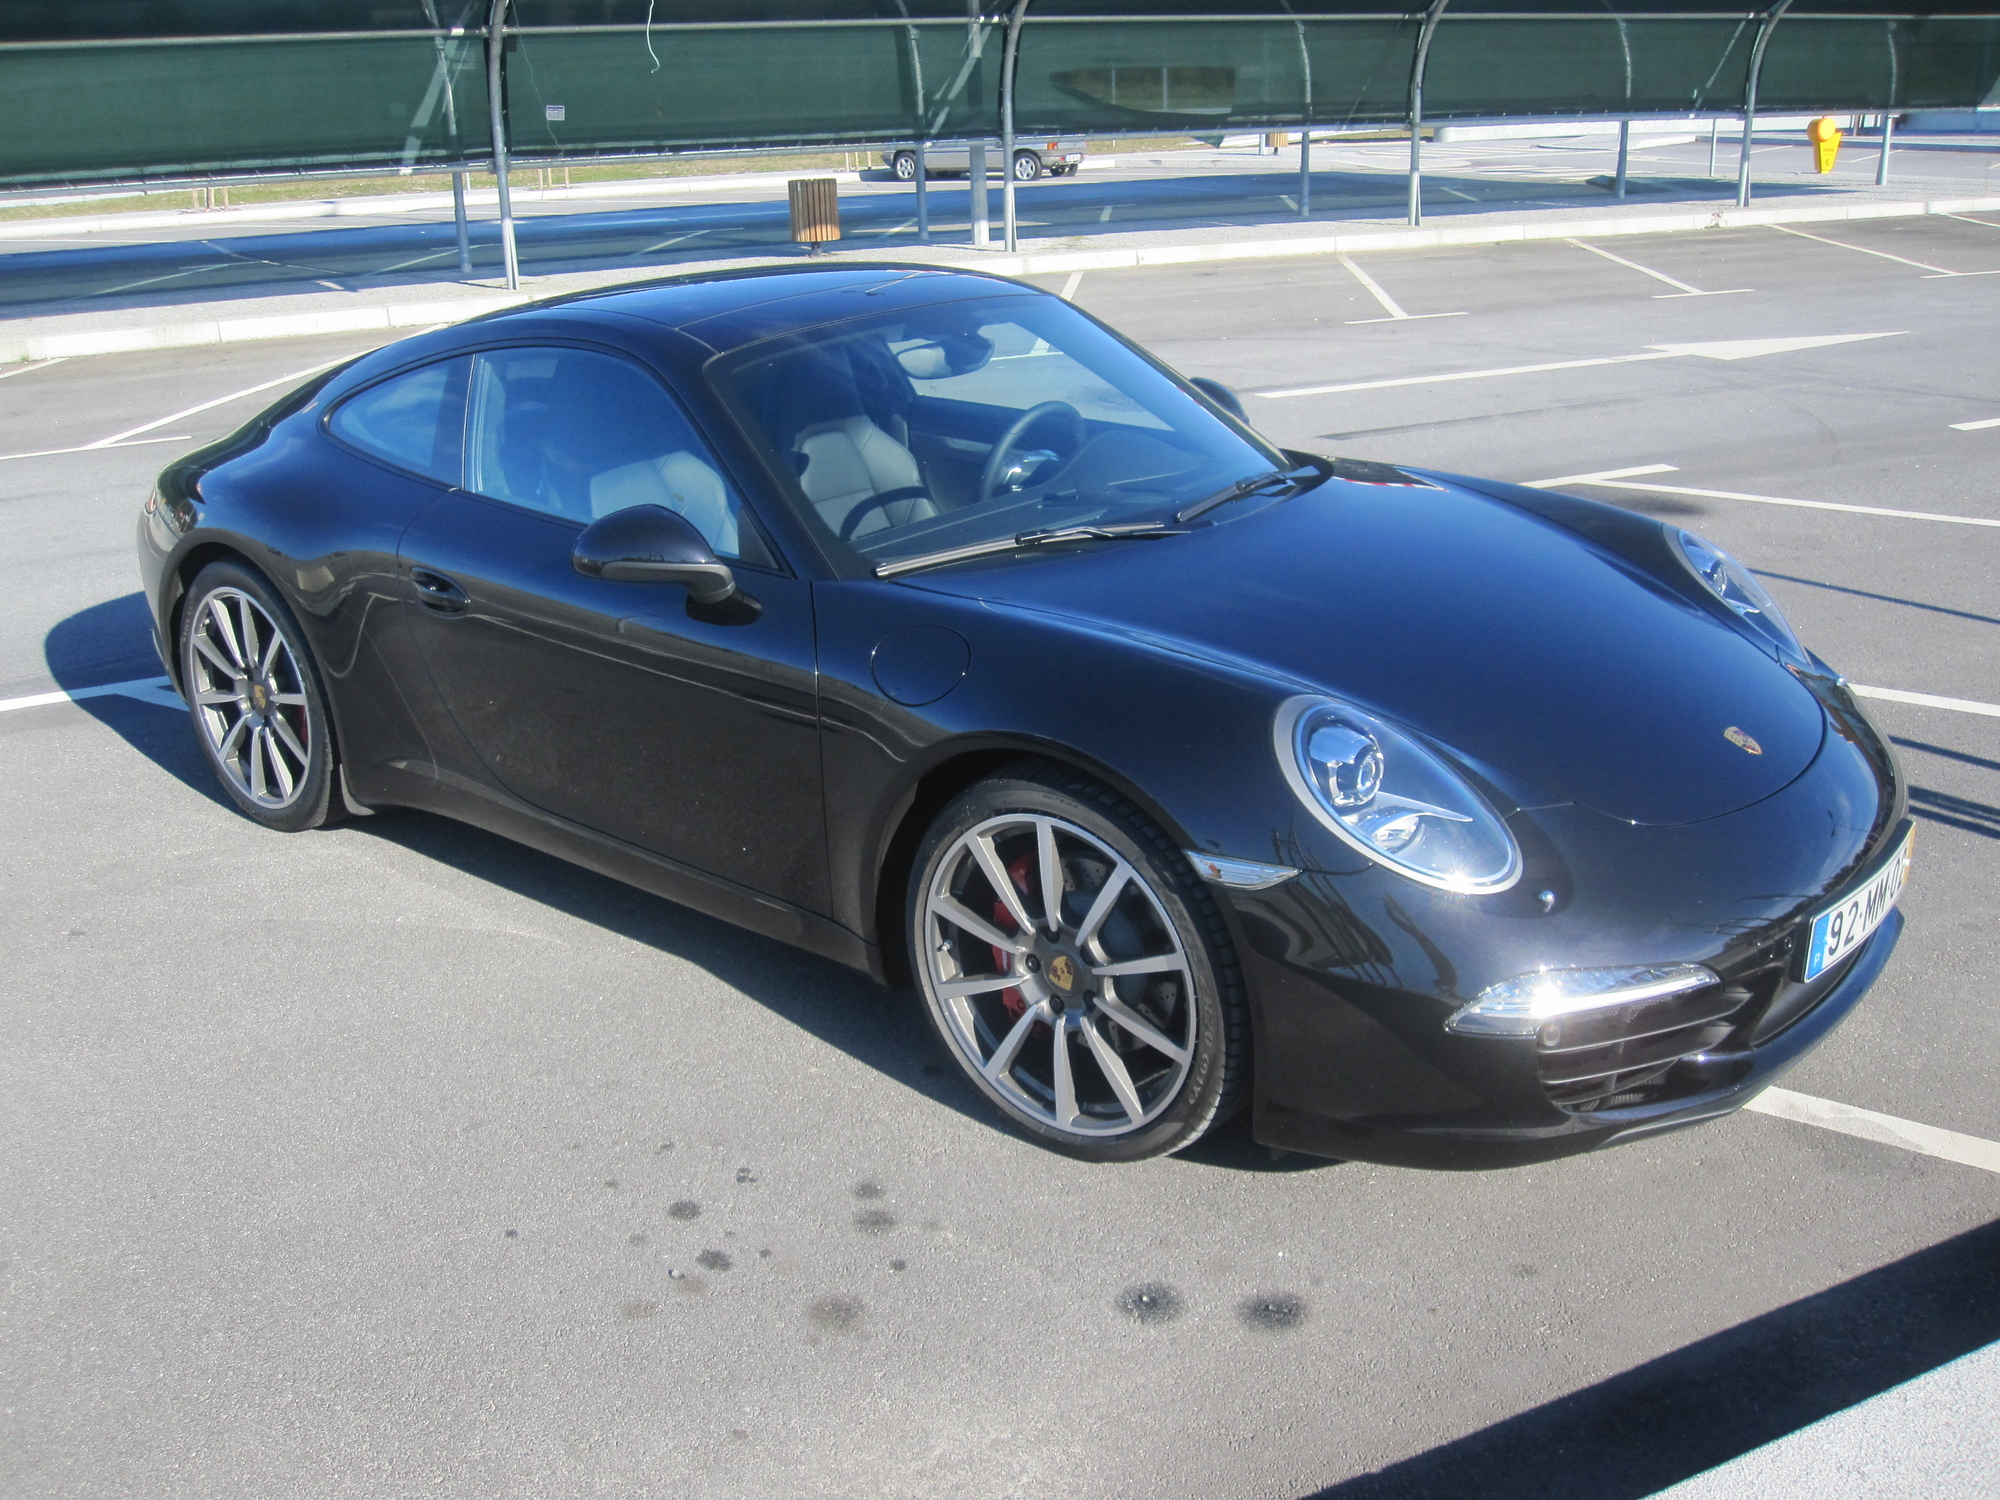 New Porsche 911 (991) Carrera S test drive